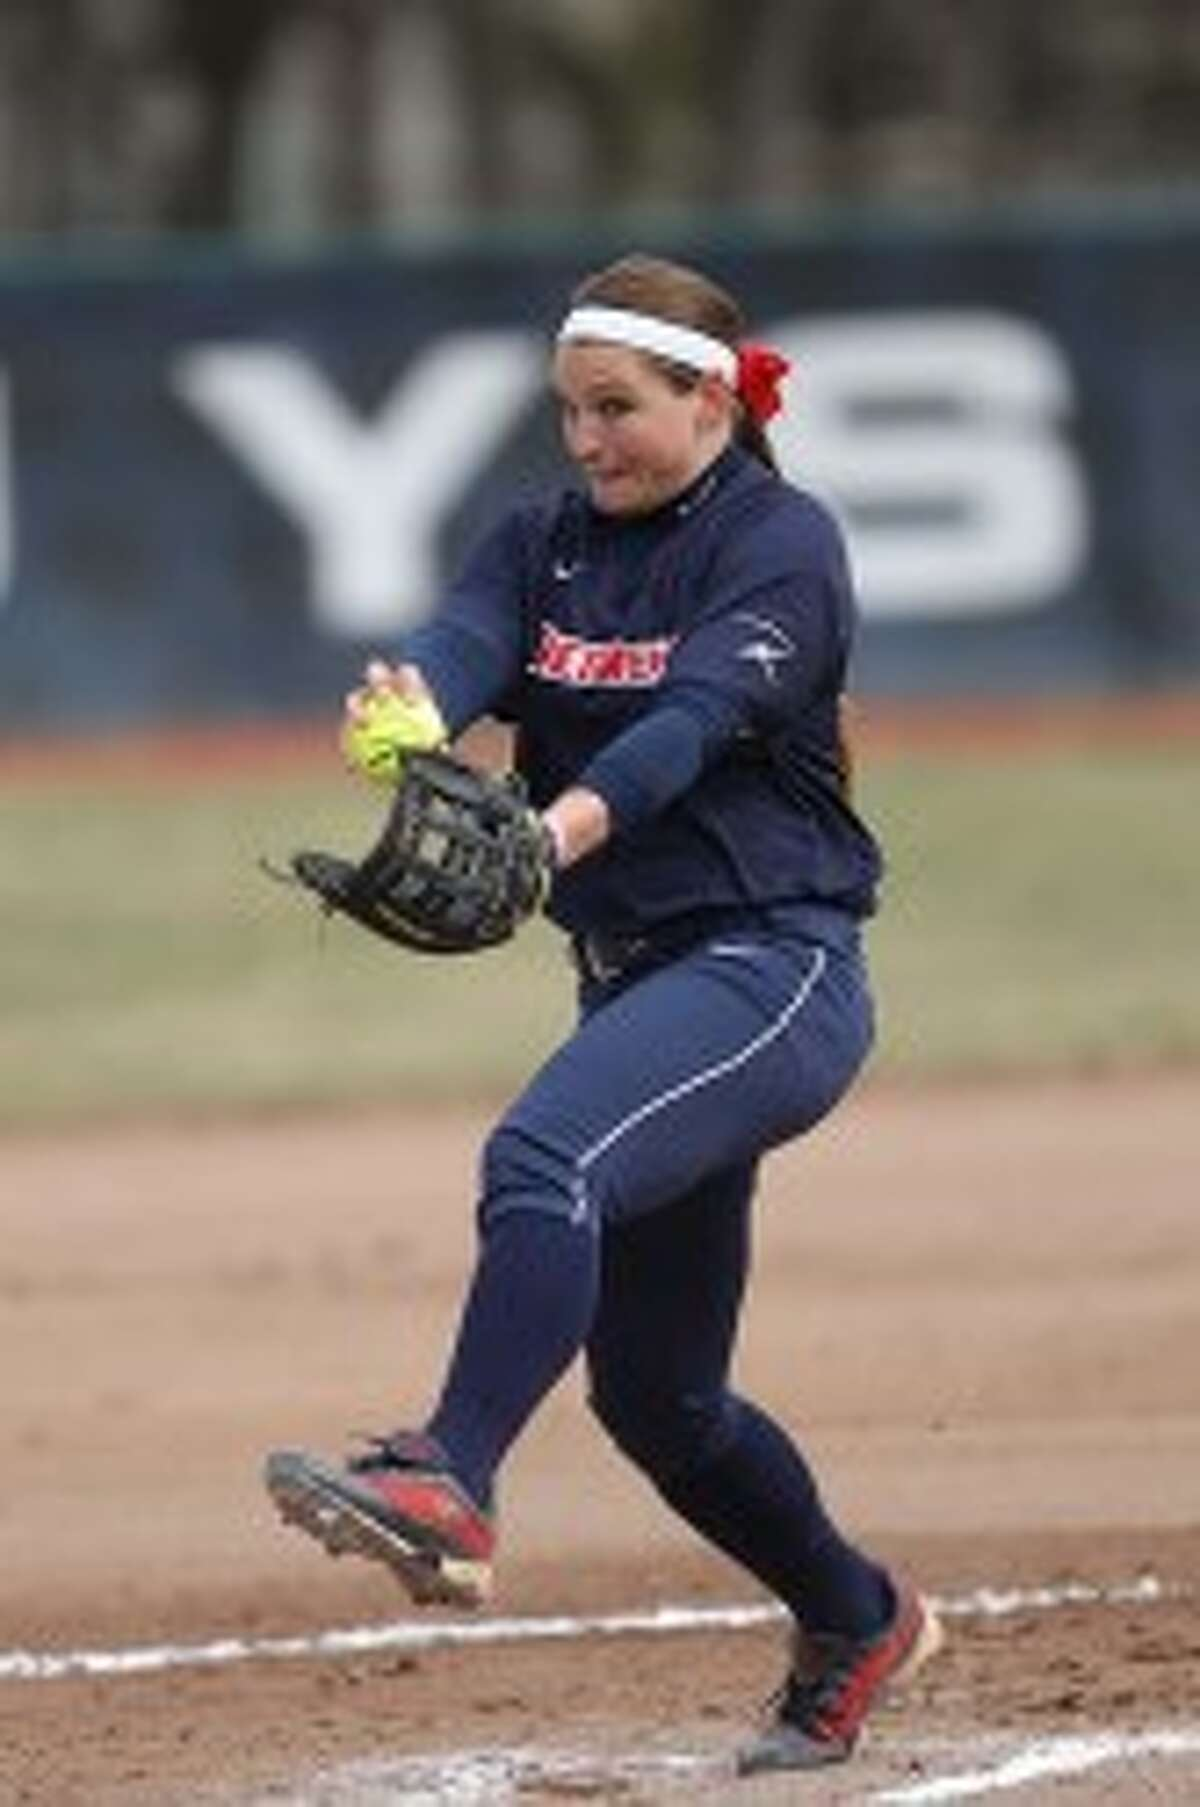 Julia Maksym, a 2010 Manistee graduate, recently completed her junior season with the Titans. (Photo Courtesy of University of Detroit Mercy Athletics)